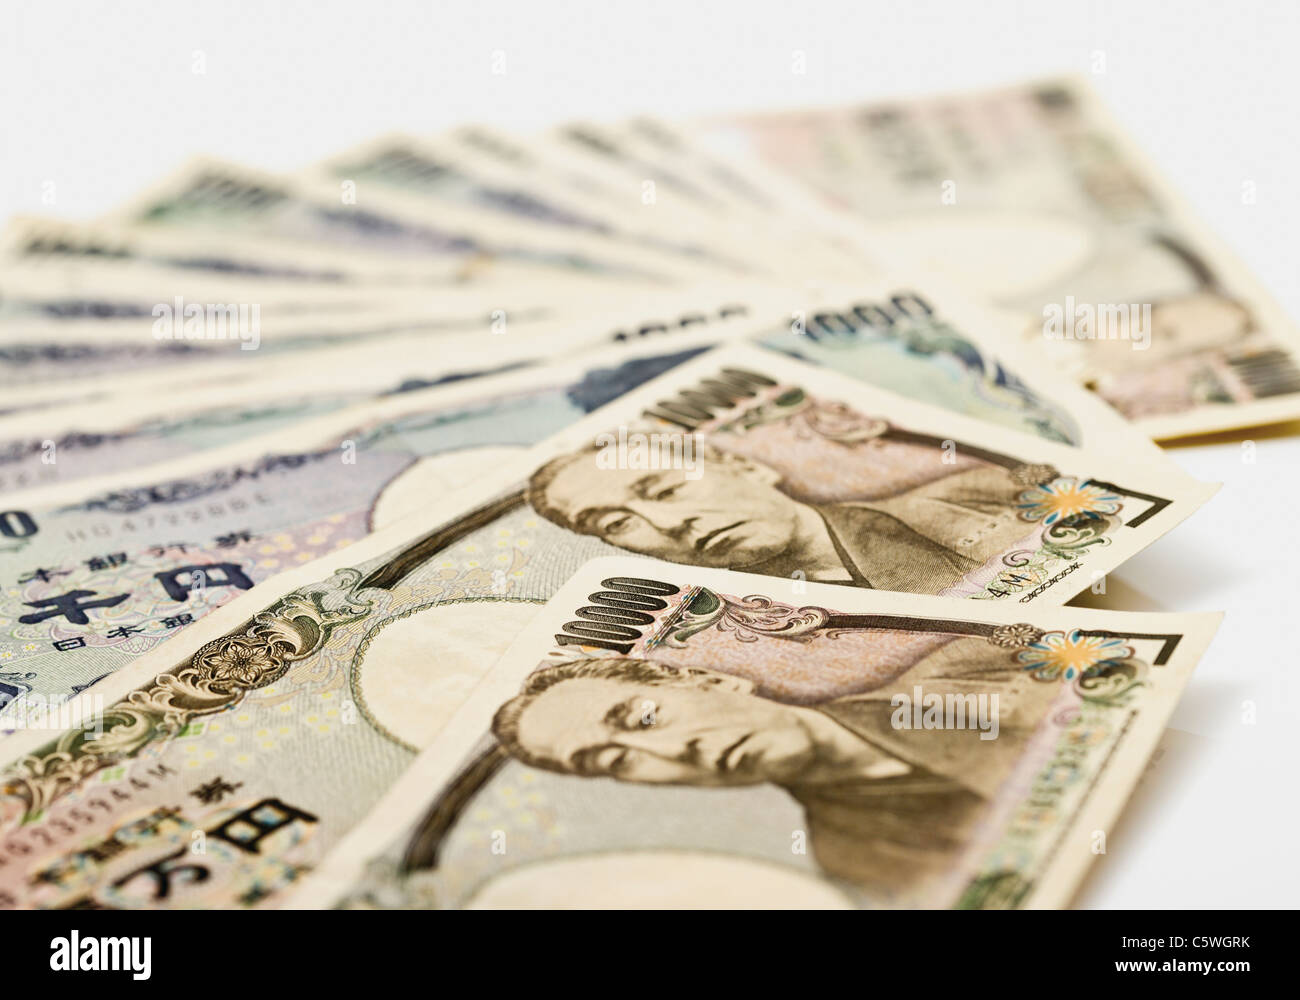 Japanese yen notes fanned out against white background - Stock Image